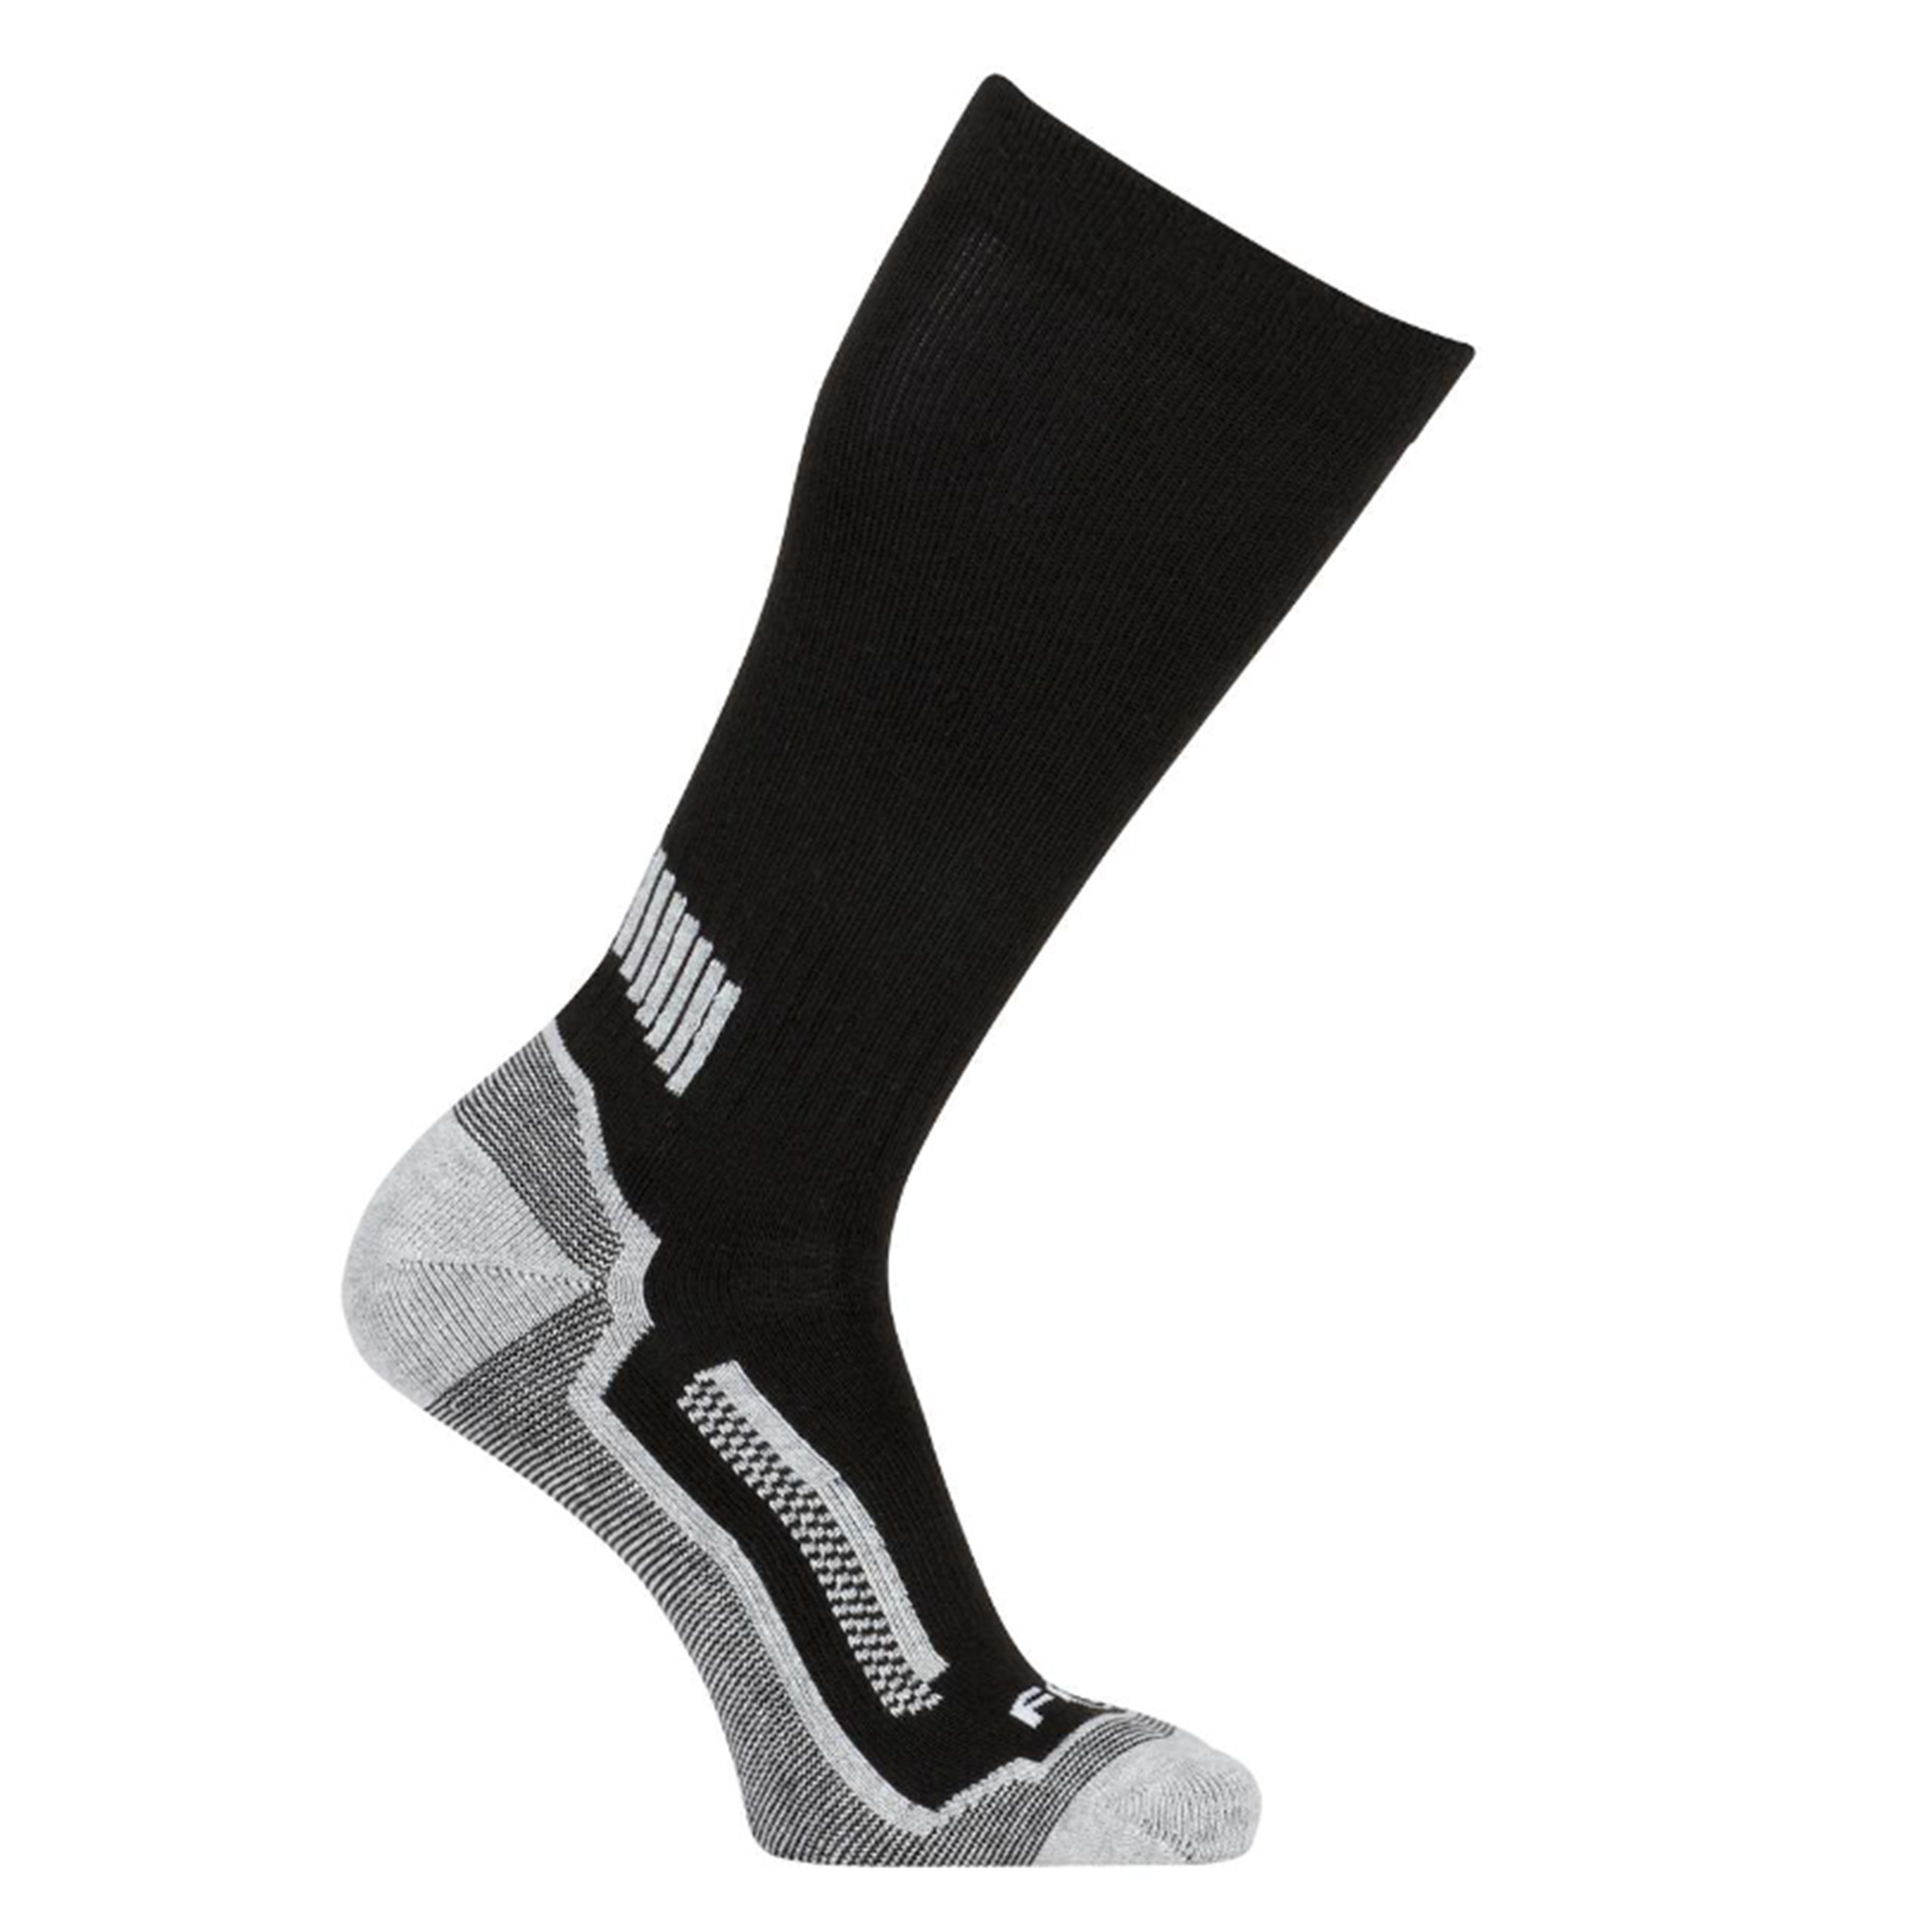 Force Performance Crew Socks 3 Pack, Black, swatch